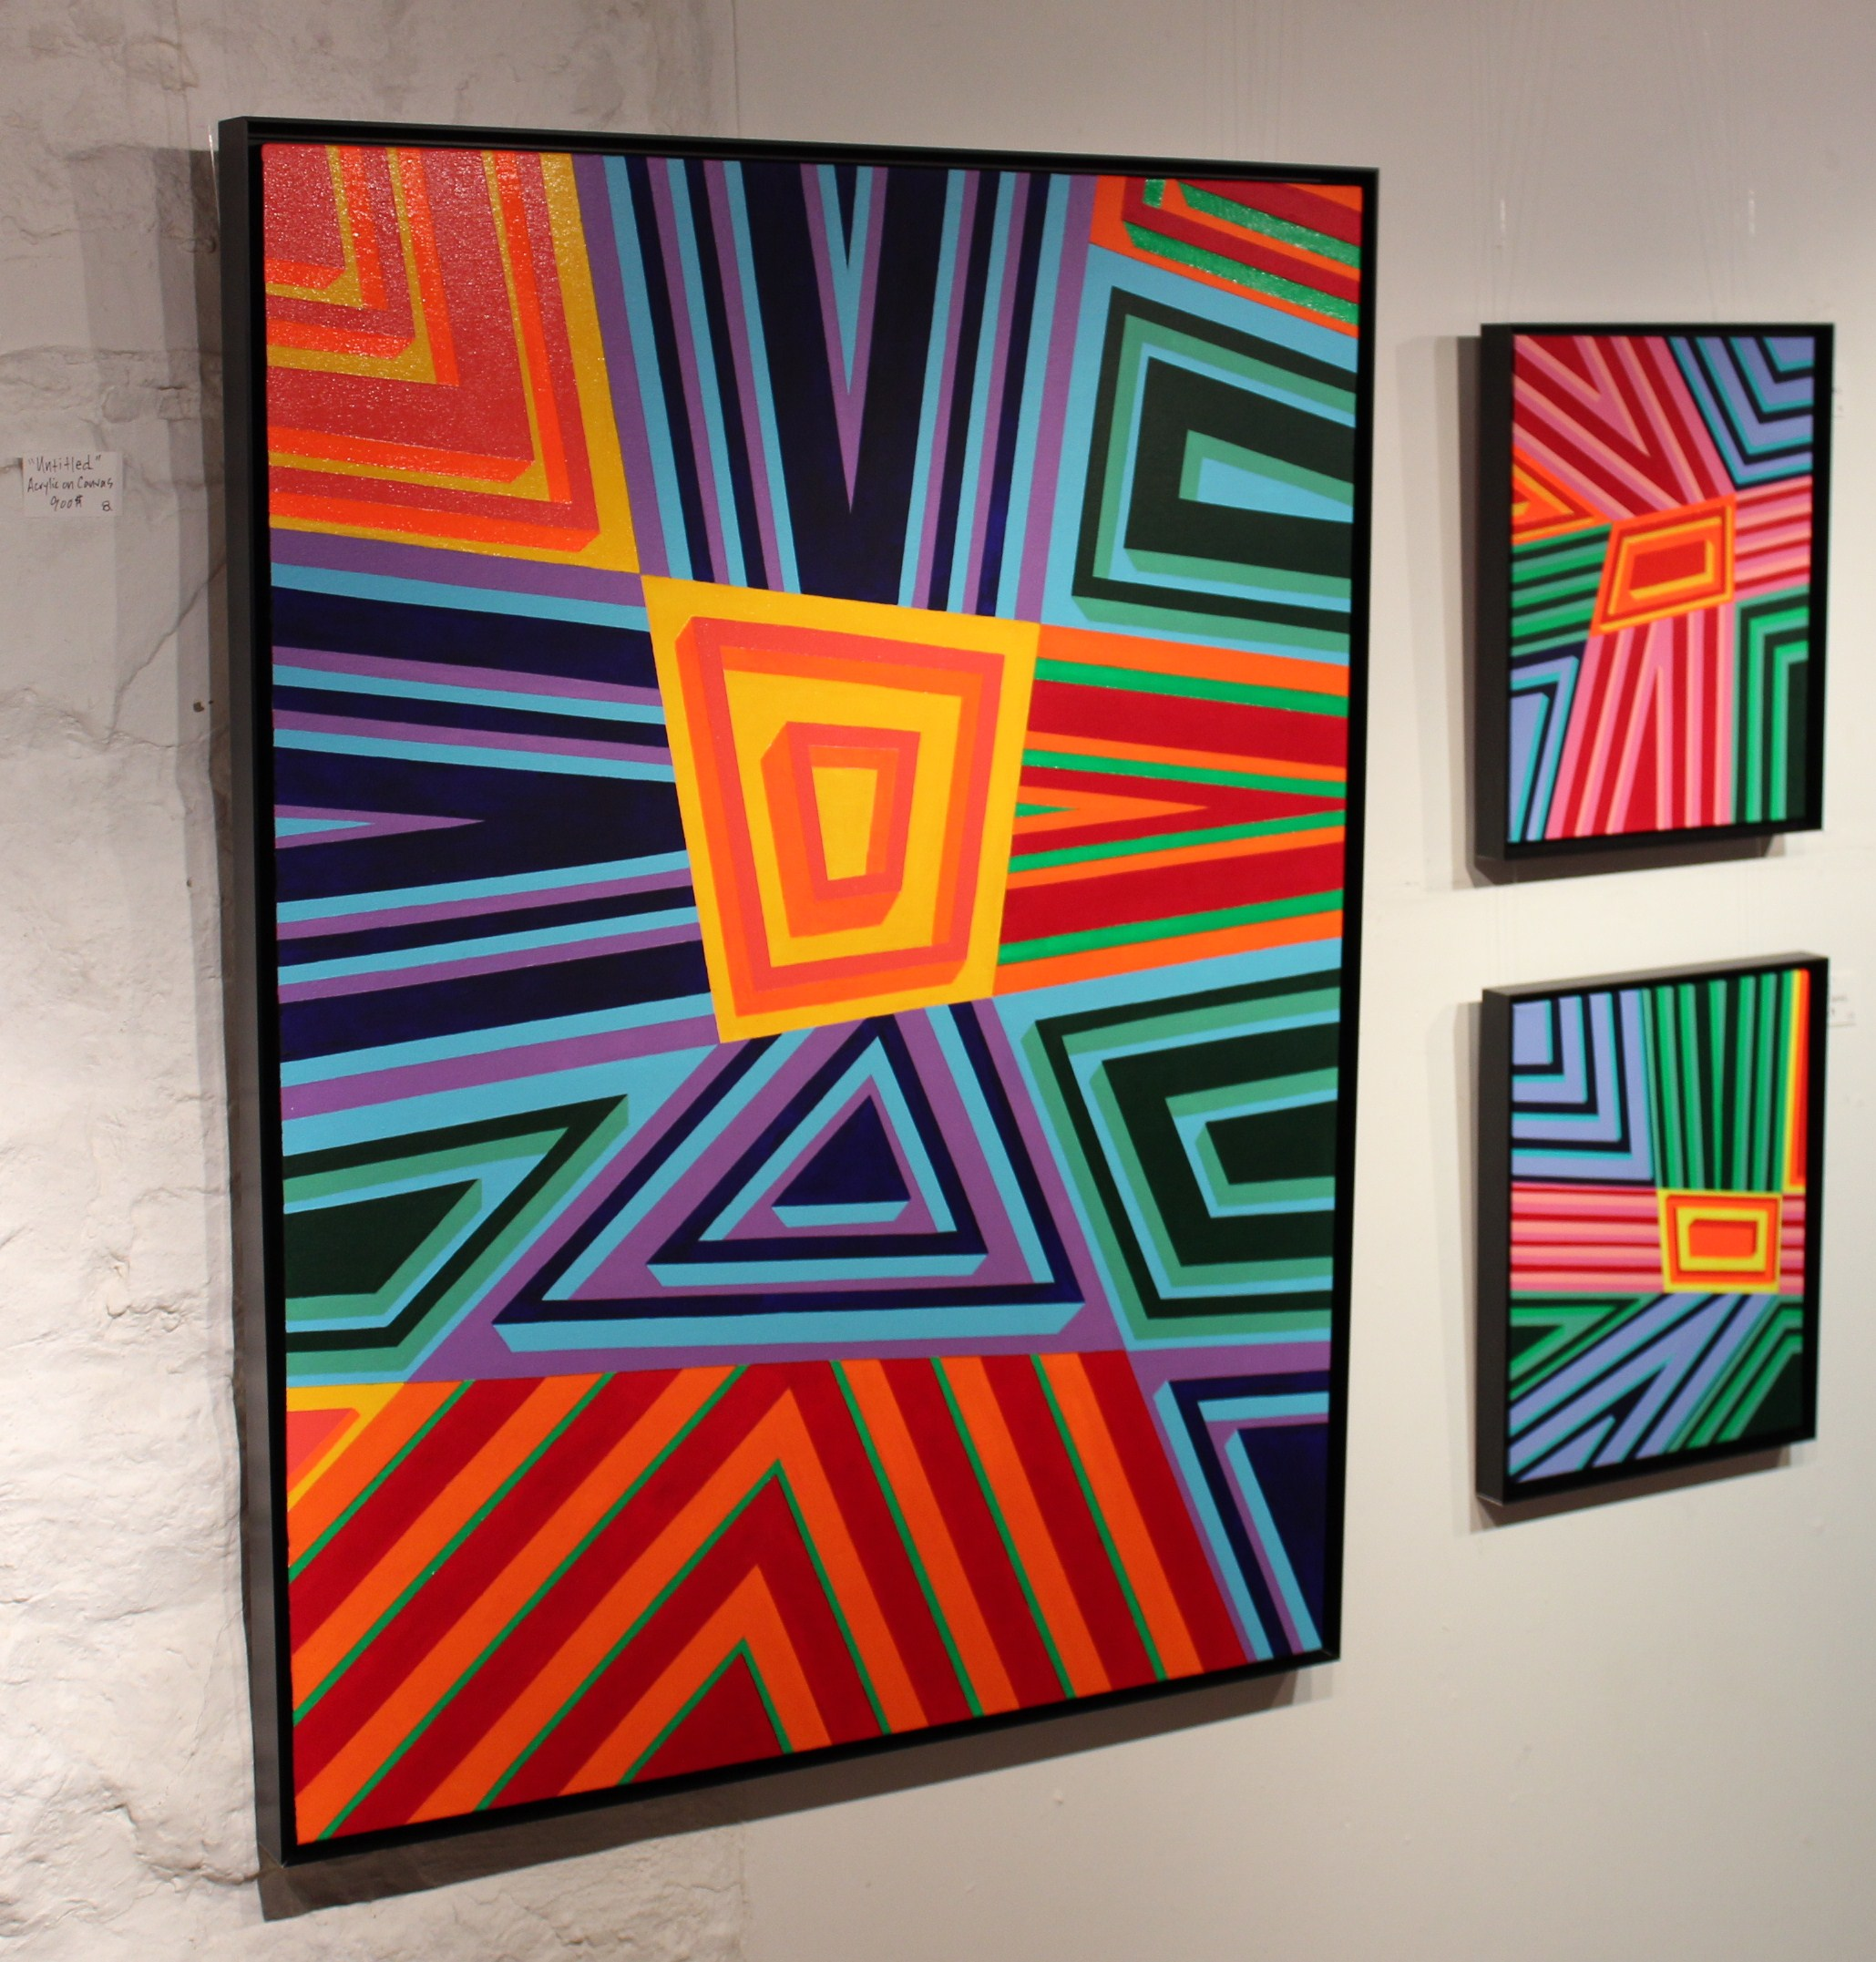 Work by Eric May (MG: January 2012)